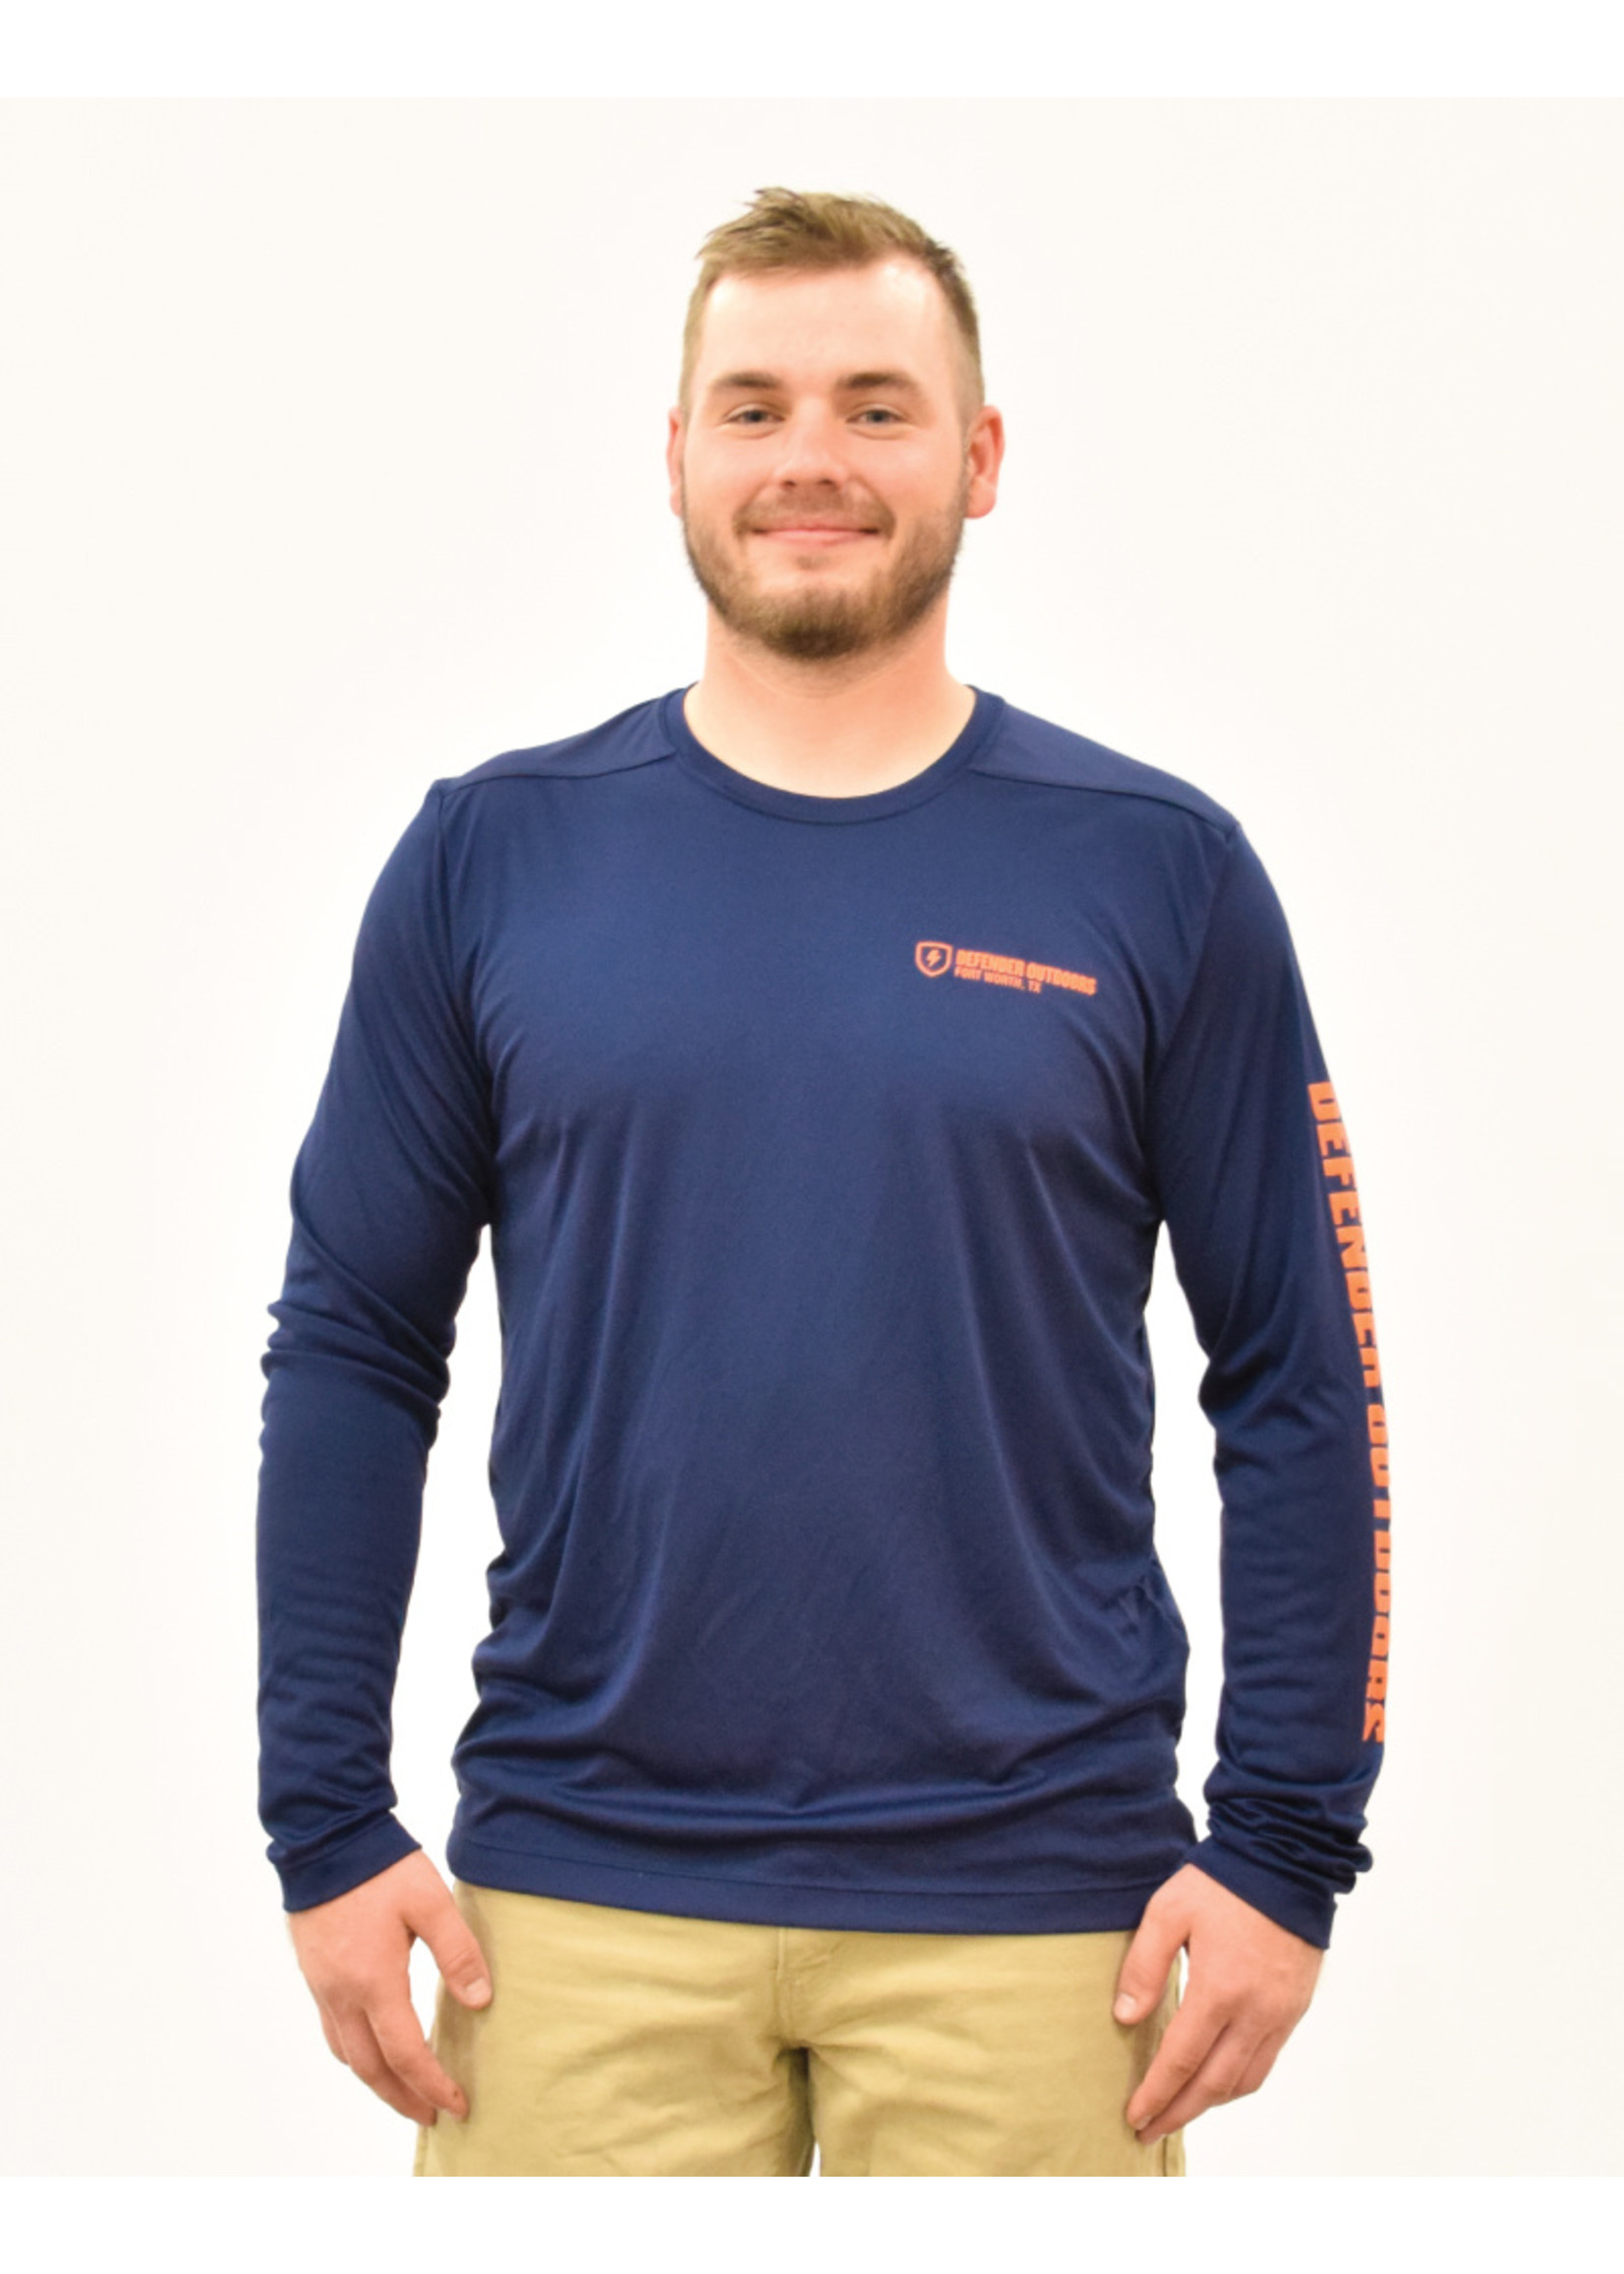 Defender Outdoors Performance Long Sleeve T-Shirt